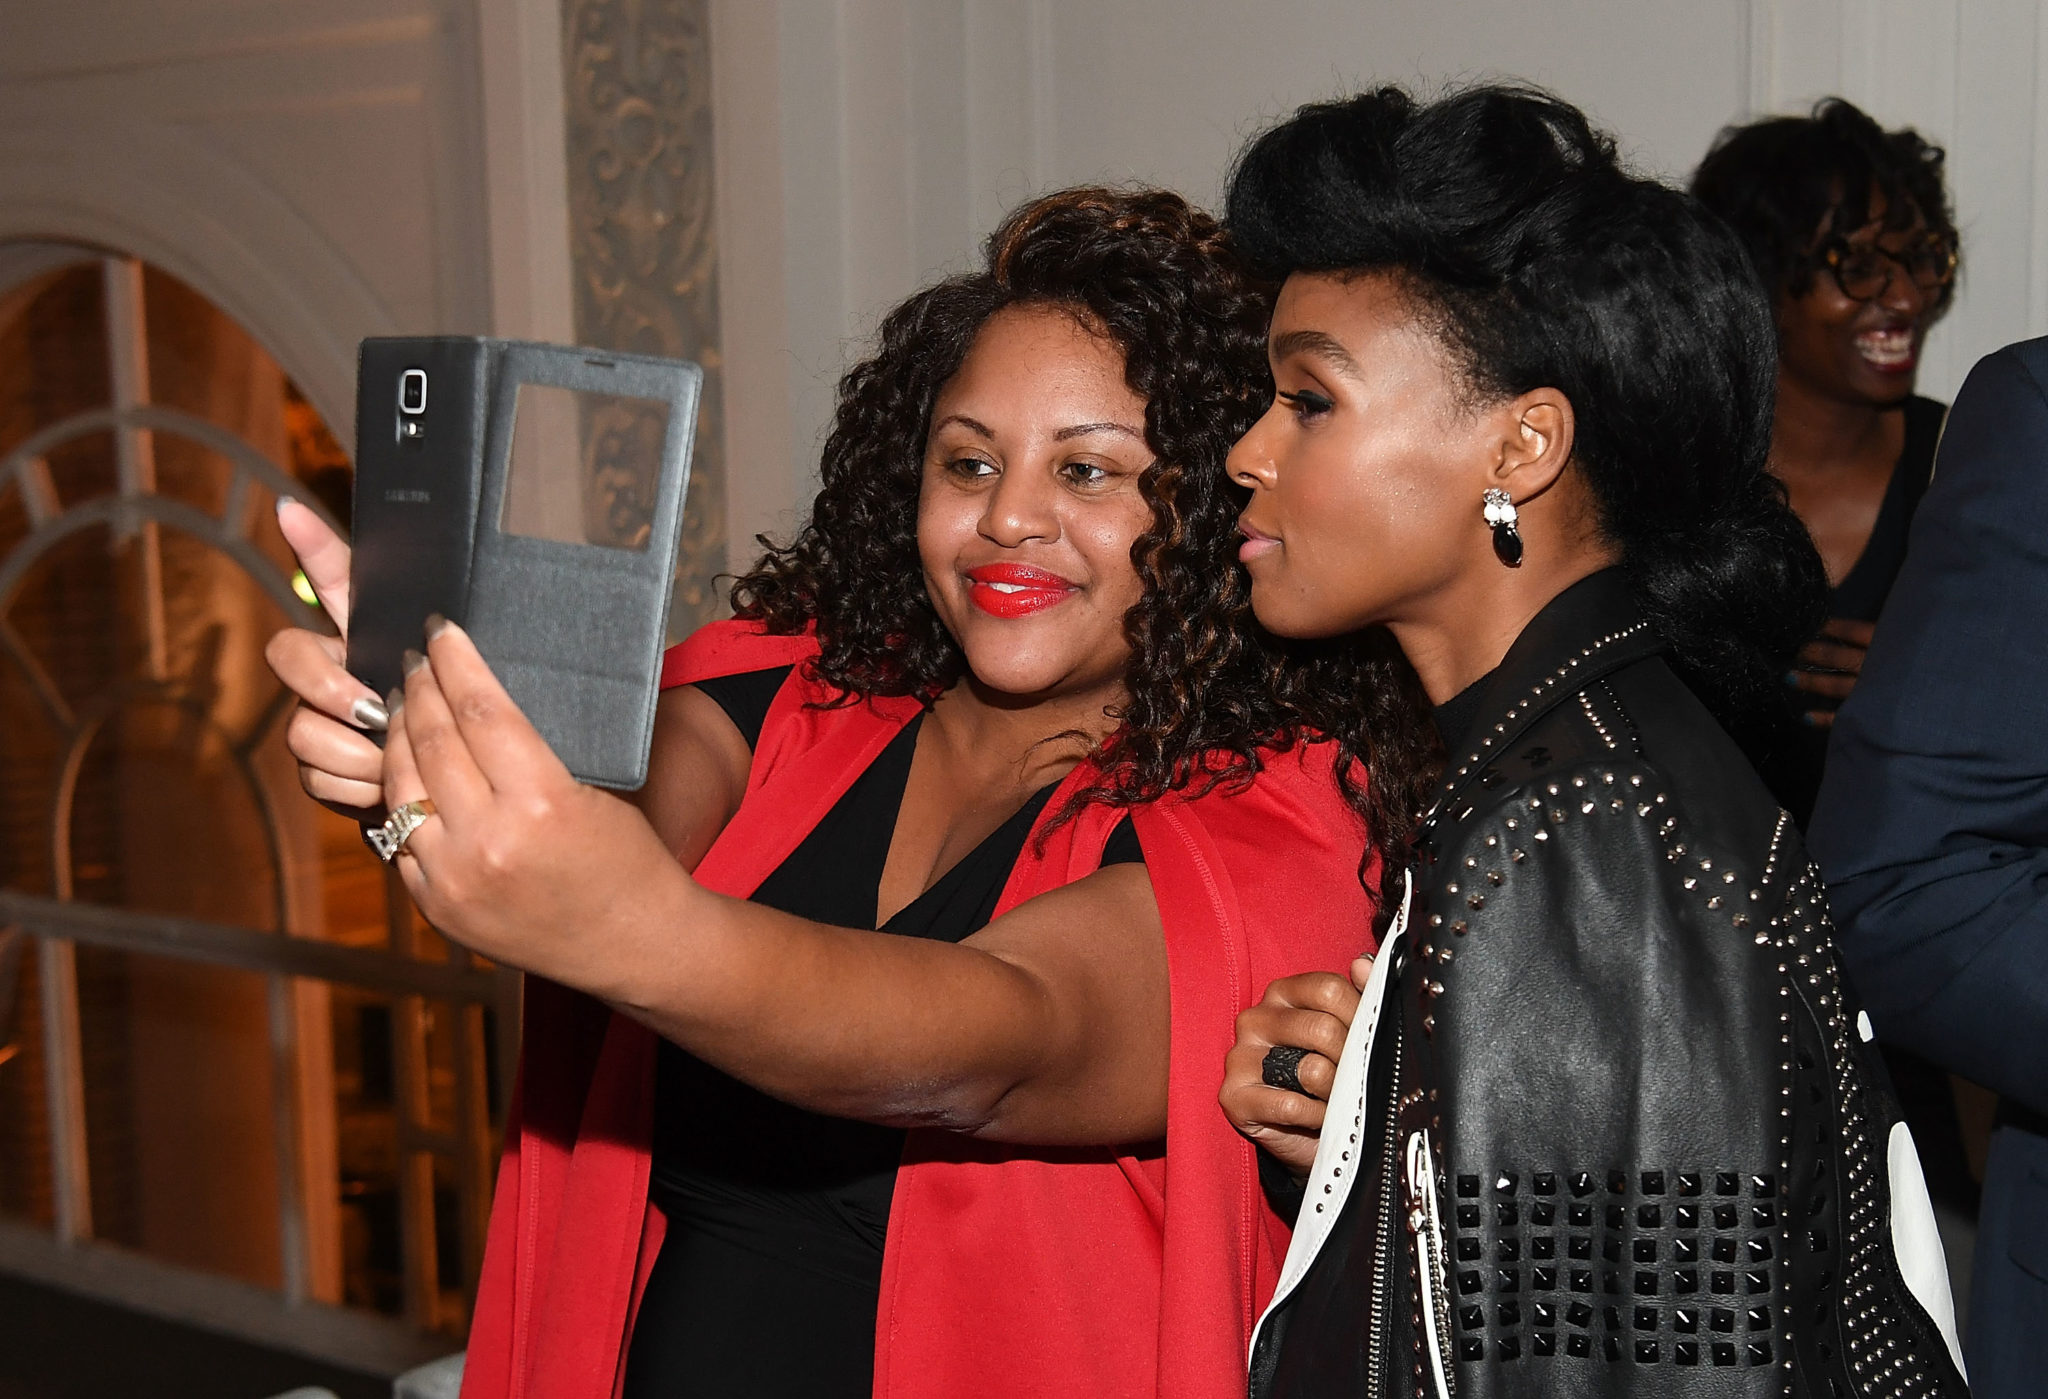 """HIDDEN FIGURES"" Star Janelle Monae Hosts Dinner with STEM Leaders in Atlanta"